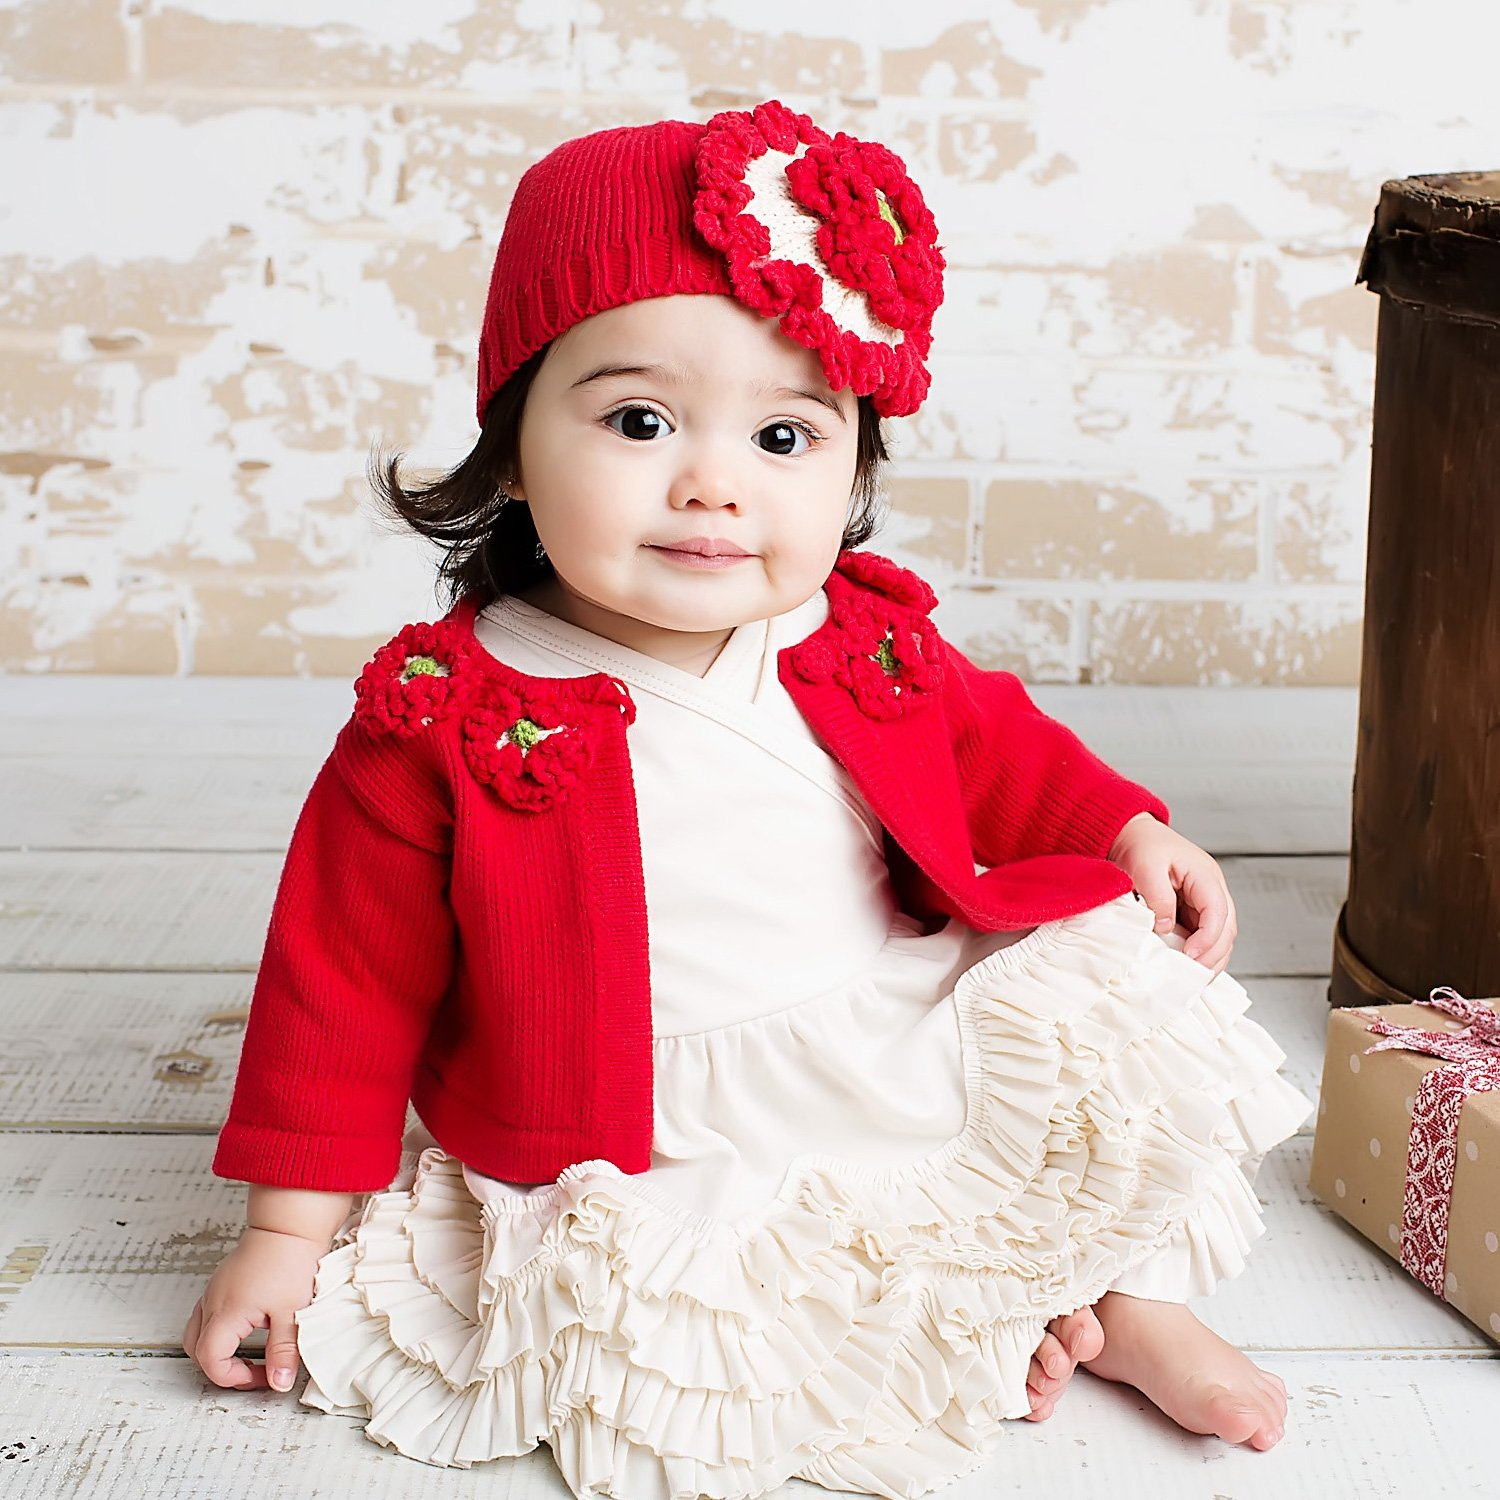 Babys First Christmas Outfit | Newborn Christmas Photo Ideas | Baby Bling Street Baby Fashion Boutique